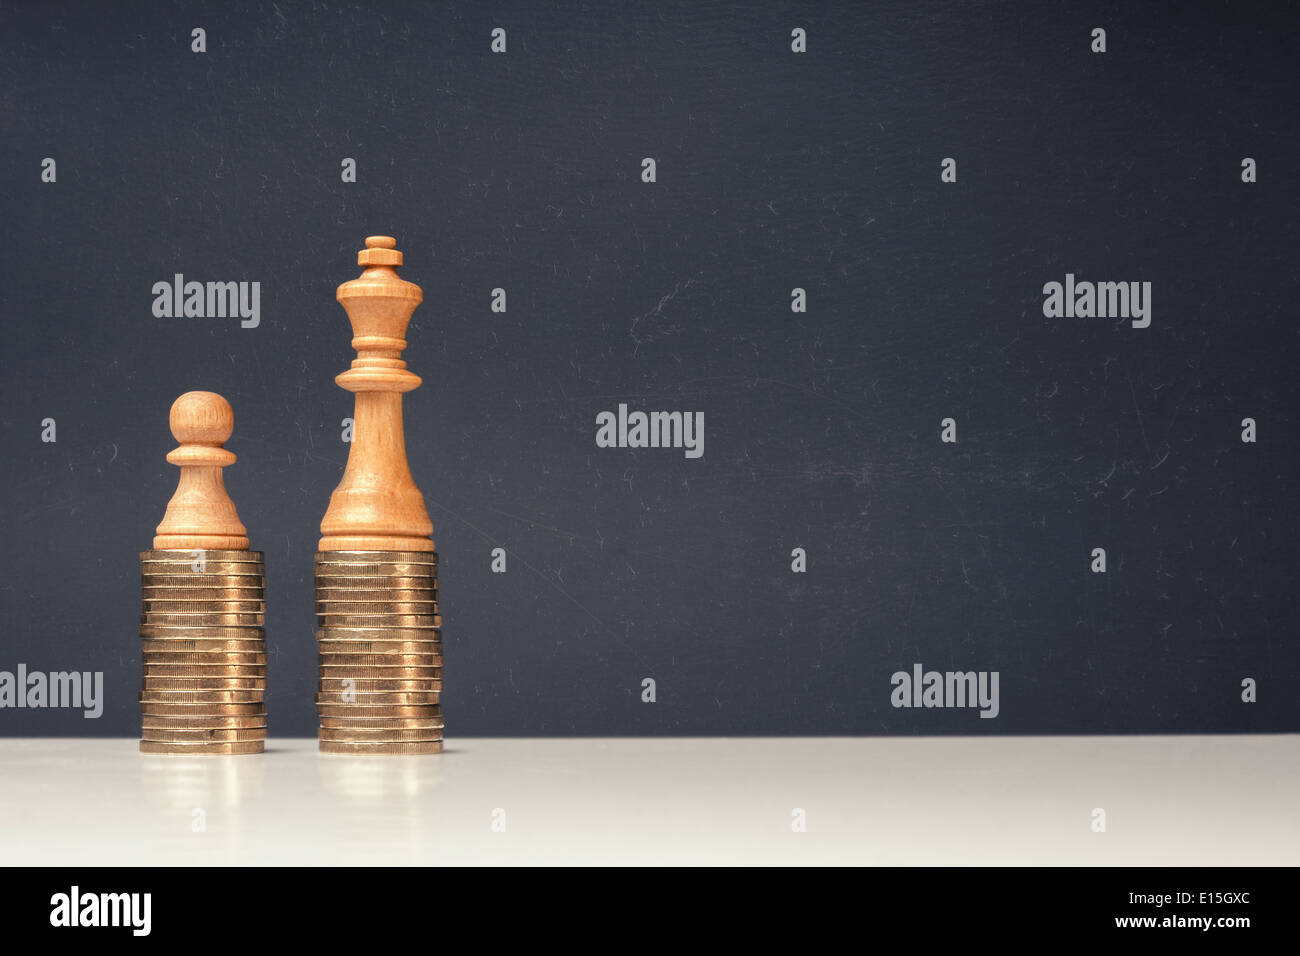 Income differences between rich and poor - Stock Image